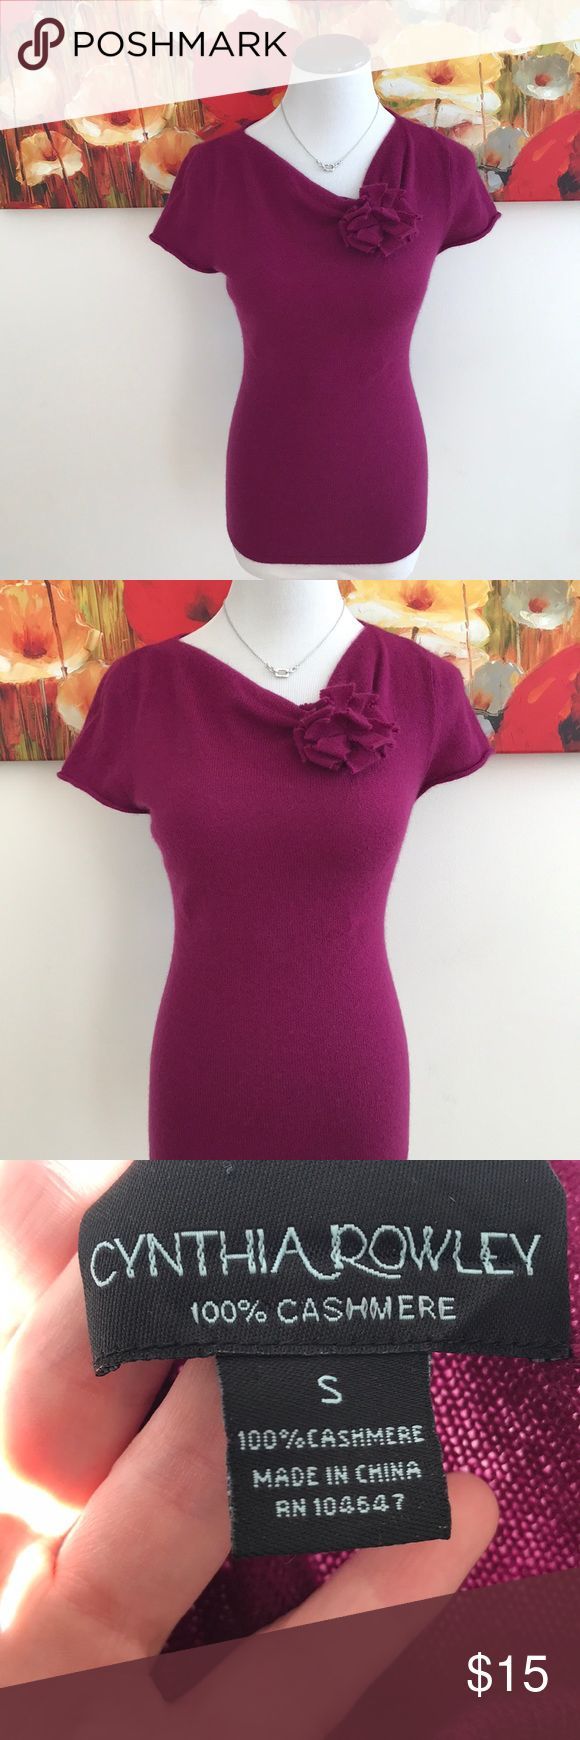 100% Cashmere Cynthia Rowley top Beautiful magenta color! Really great condition. One small hole on back on shirt. Barely noticeable and I'm sure it could be fixed. The hole is what I'm pointing at in the pictures Cynthia Rowley Sweaters Crew & Scoop Necks